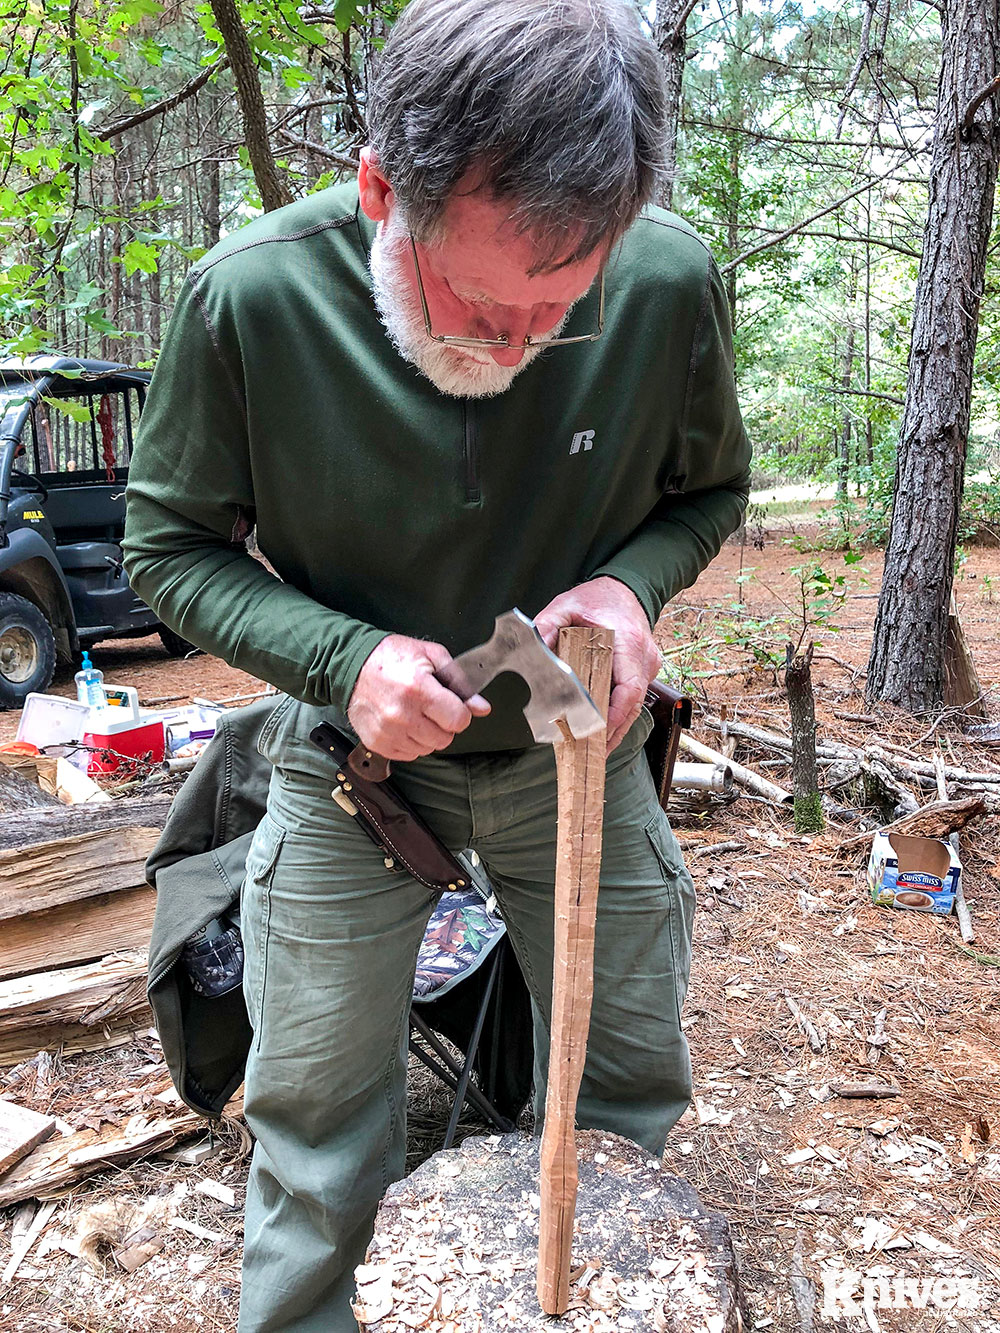 James Gibson is a Journeyman knifemaker specializing in custom knives in many different styles from traditional Bowie, Scandi-styles, to bushcraft, along with Asian-inspired choppers.